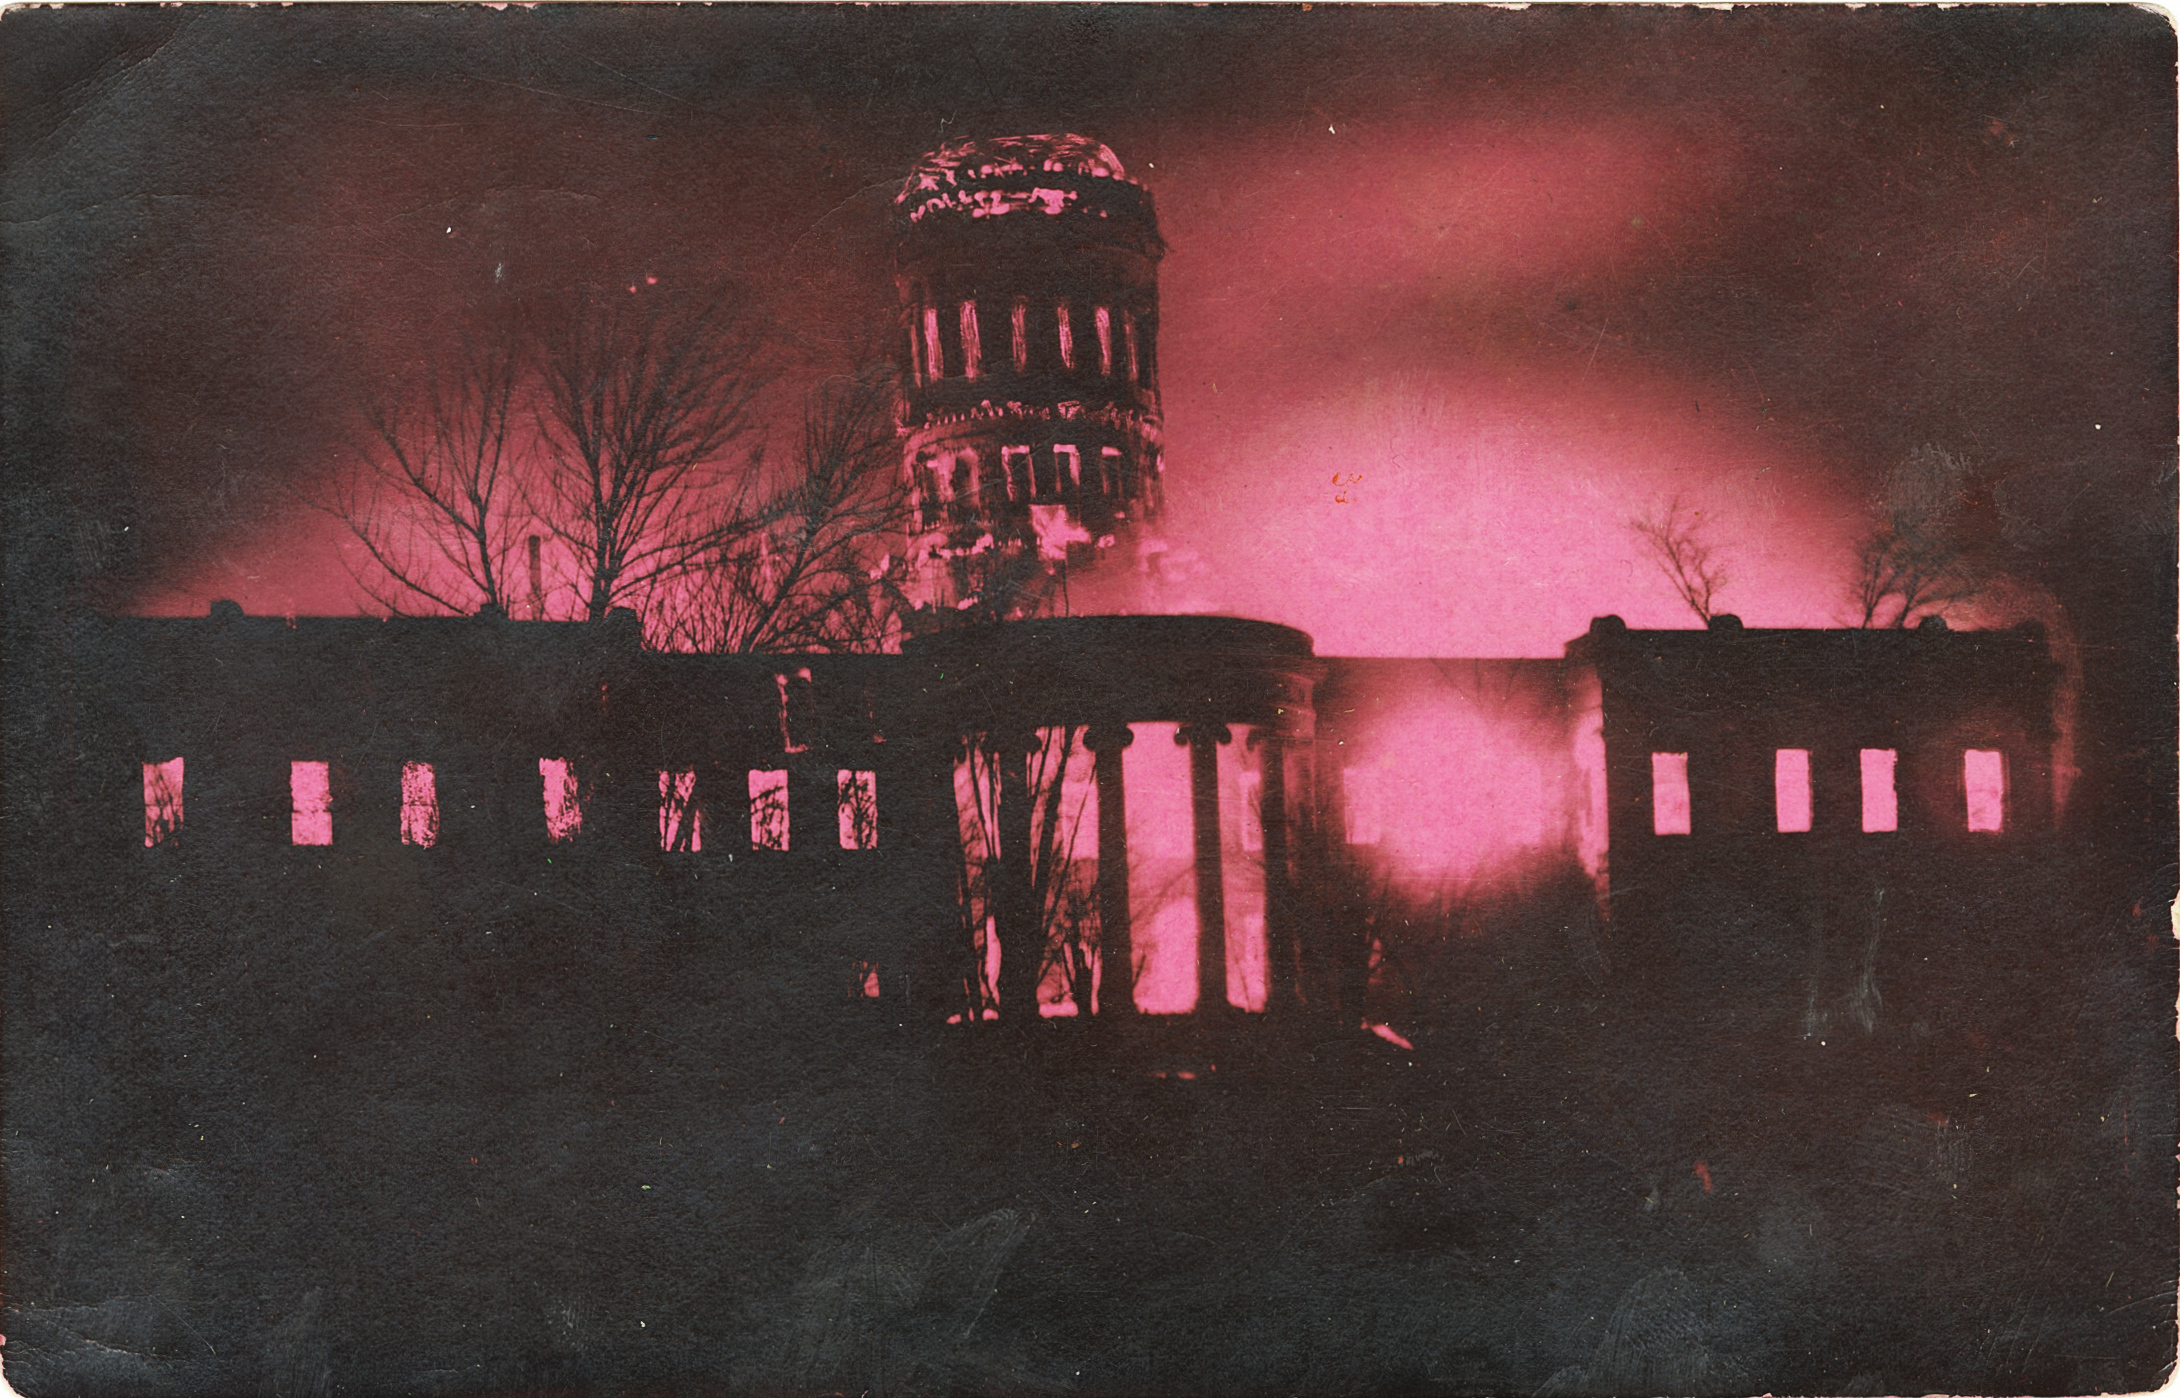 Second Capitol - 1911 Fire